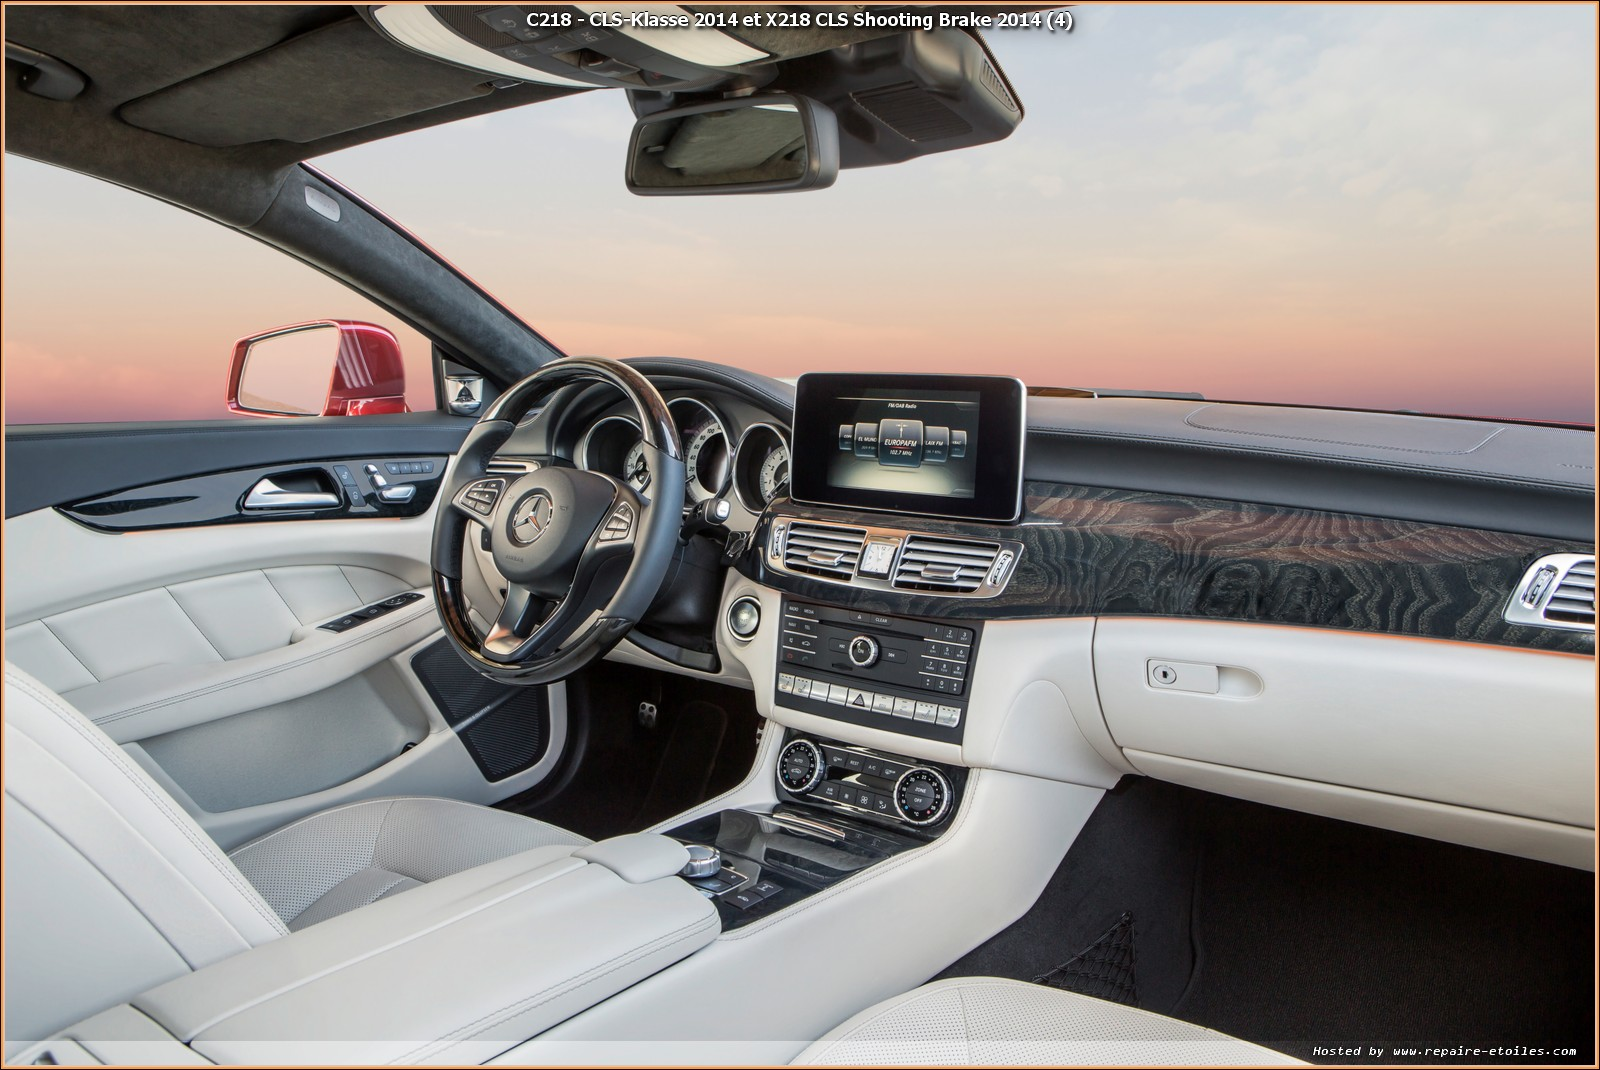 CLS-Shooting Brake et CLS-Klasse 2014 – Icones du Design.